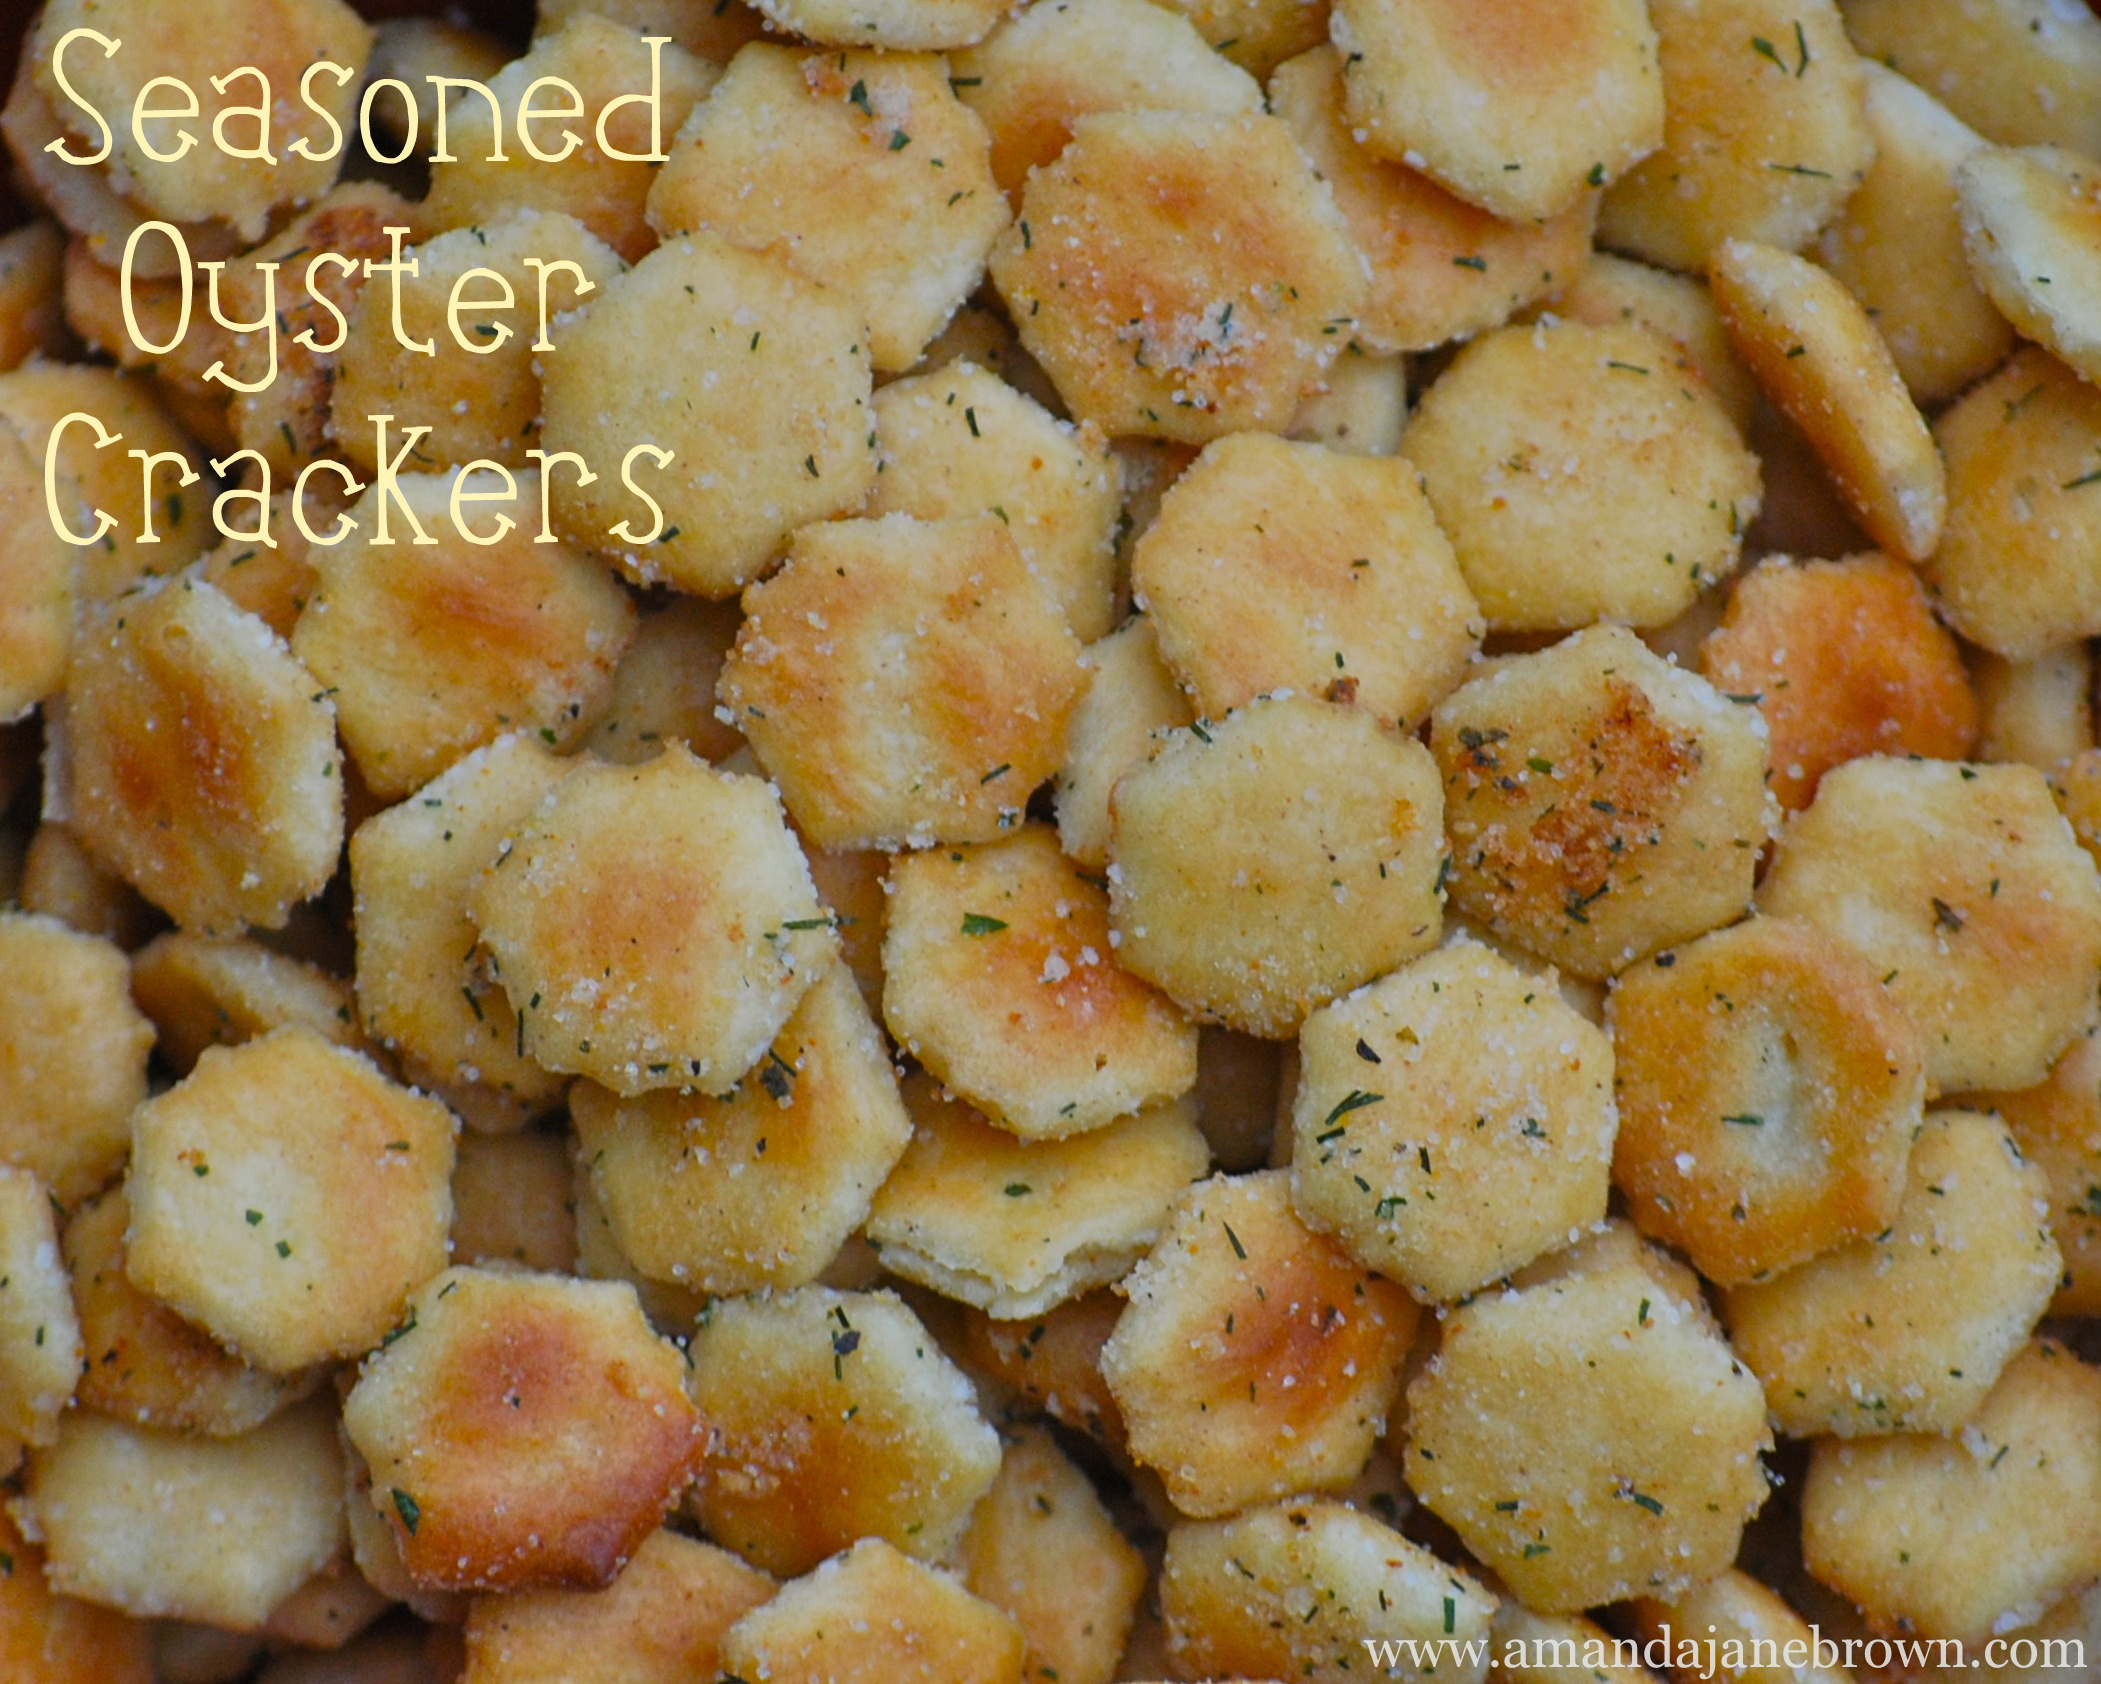 diy oyster diy oyster crackers diy oyster crackers the homemade oyster ...